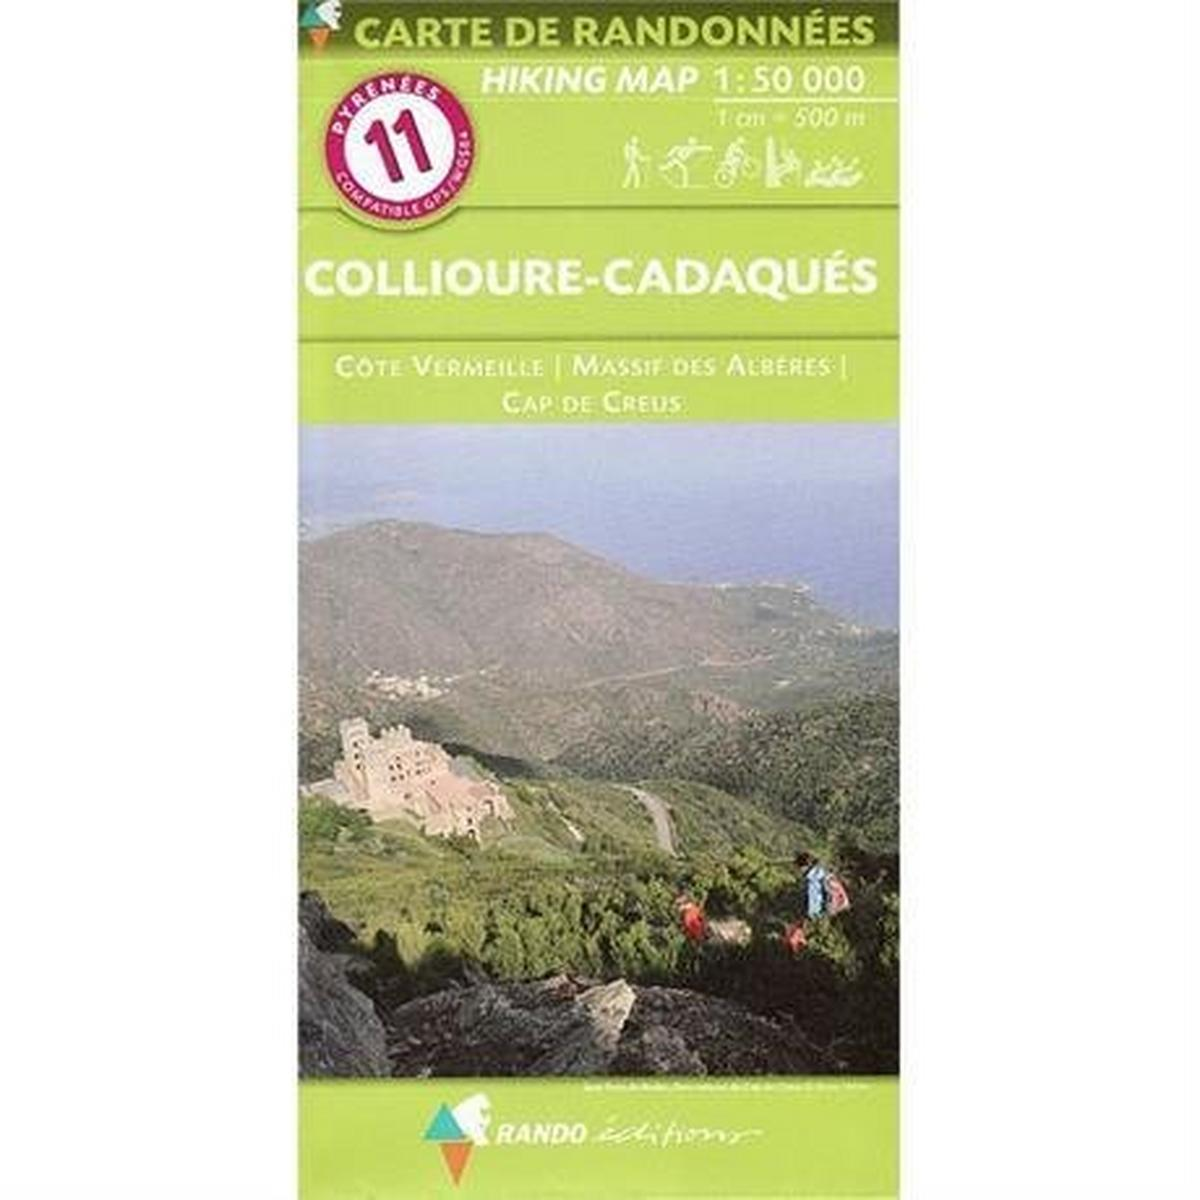 Ign Maps France IGN Map Pyrenees 11 - Collioure Cadaques